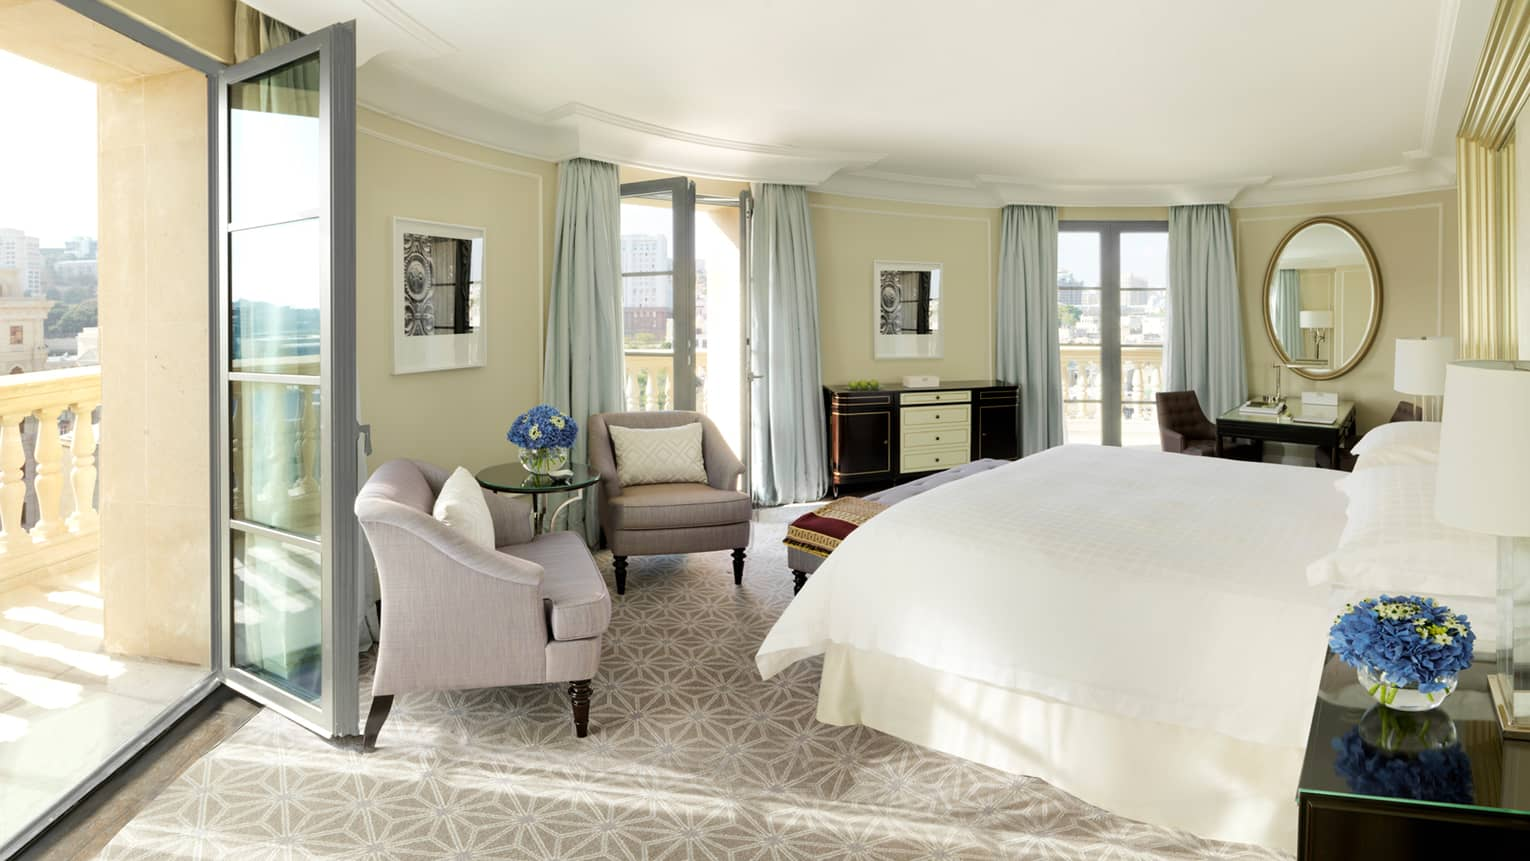 Sun streams in from open balcony door to curved hotel room with bed, plush armchairs, mirrors